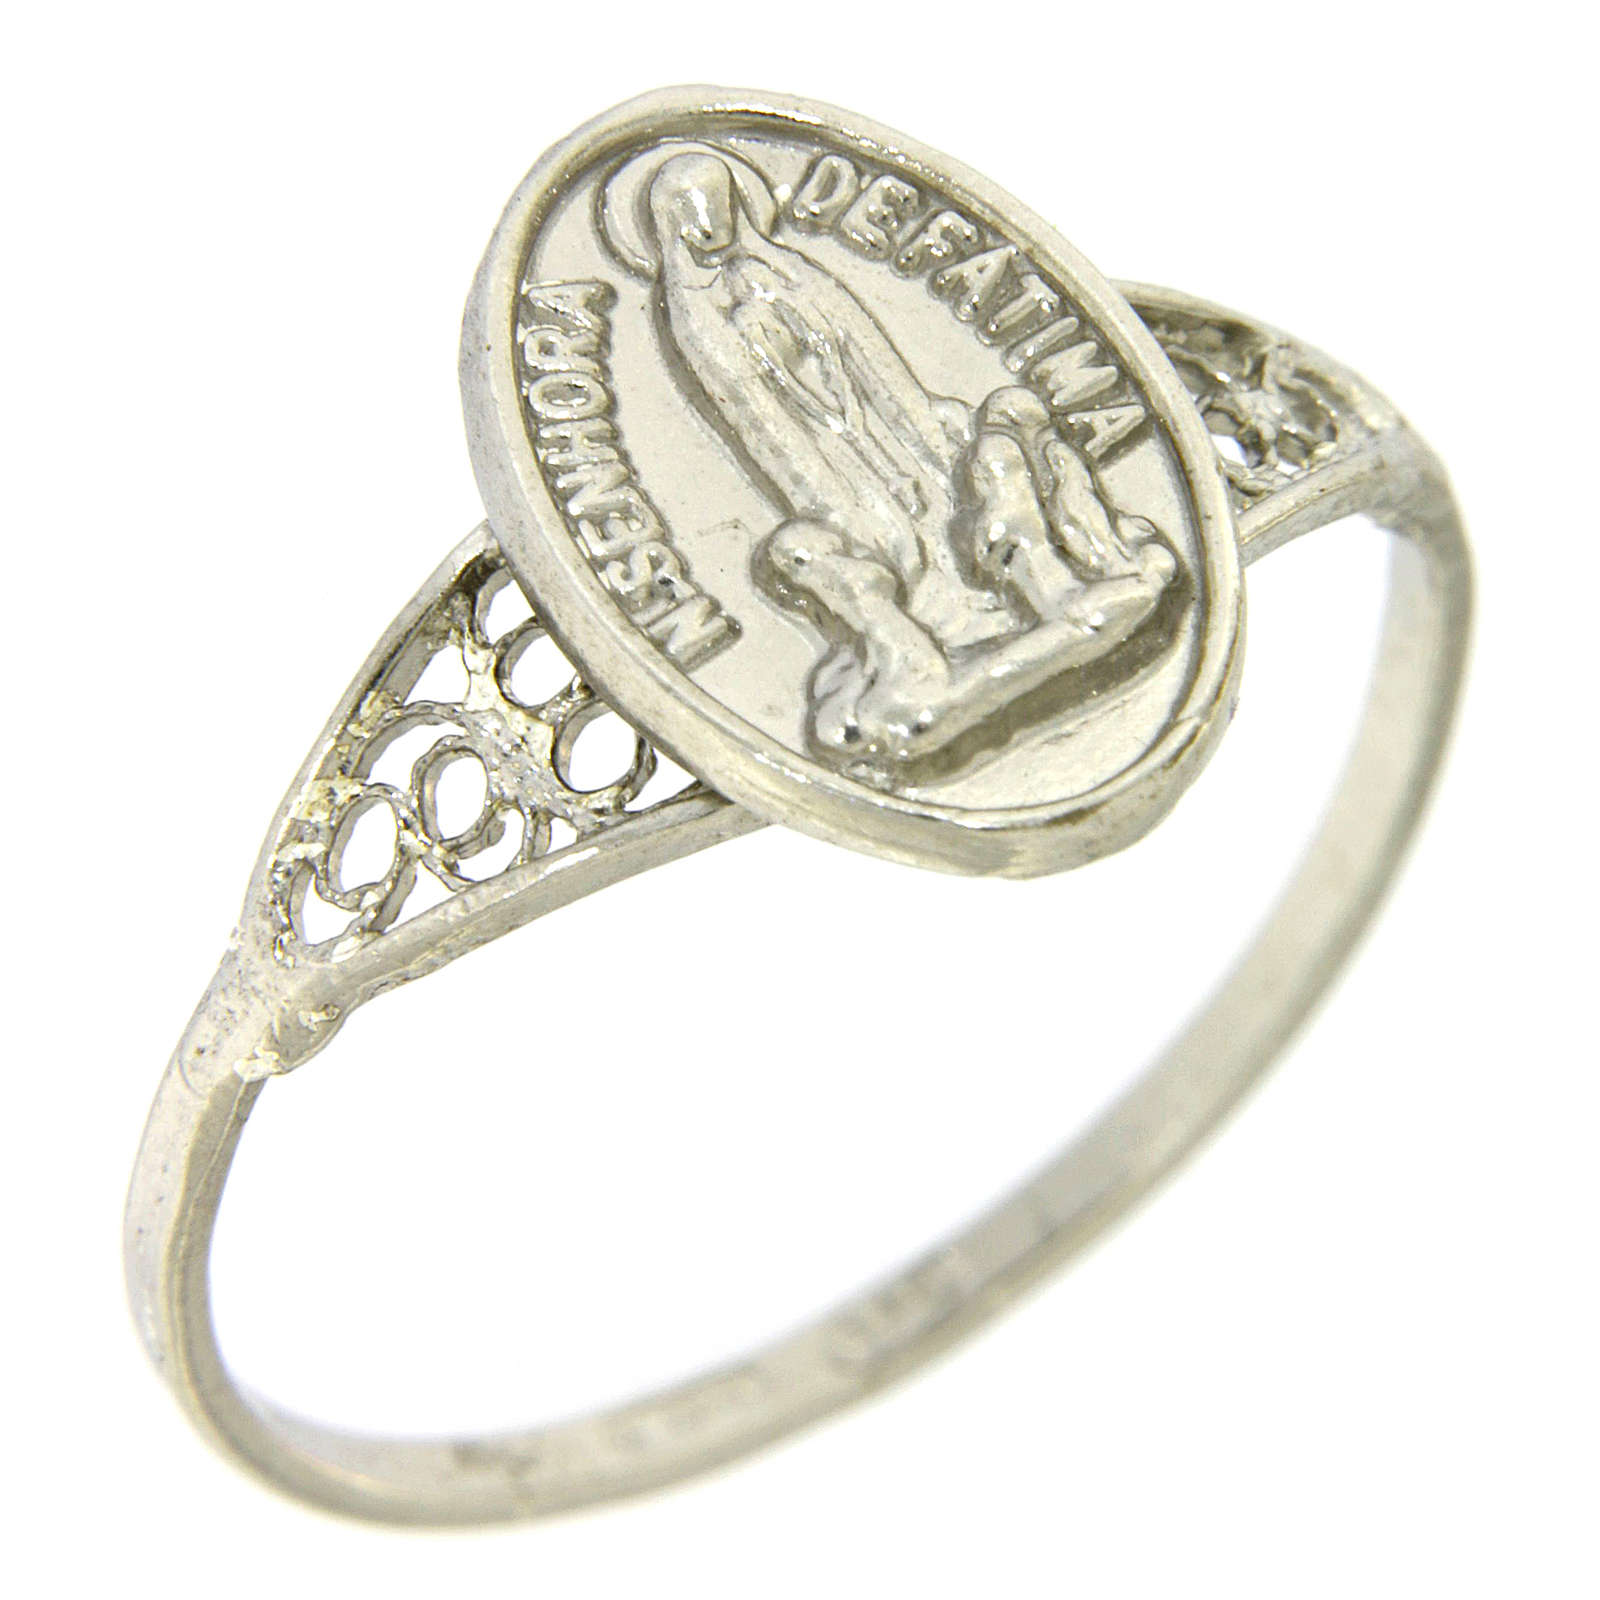 Ring in silver Our Lady of Fatima 3